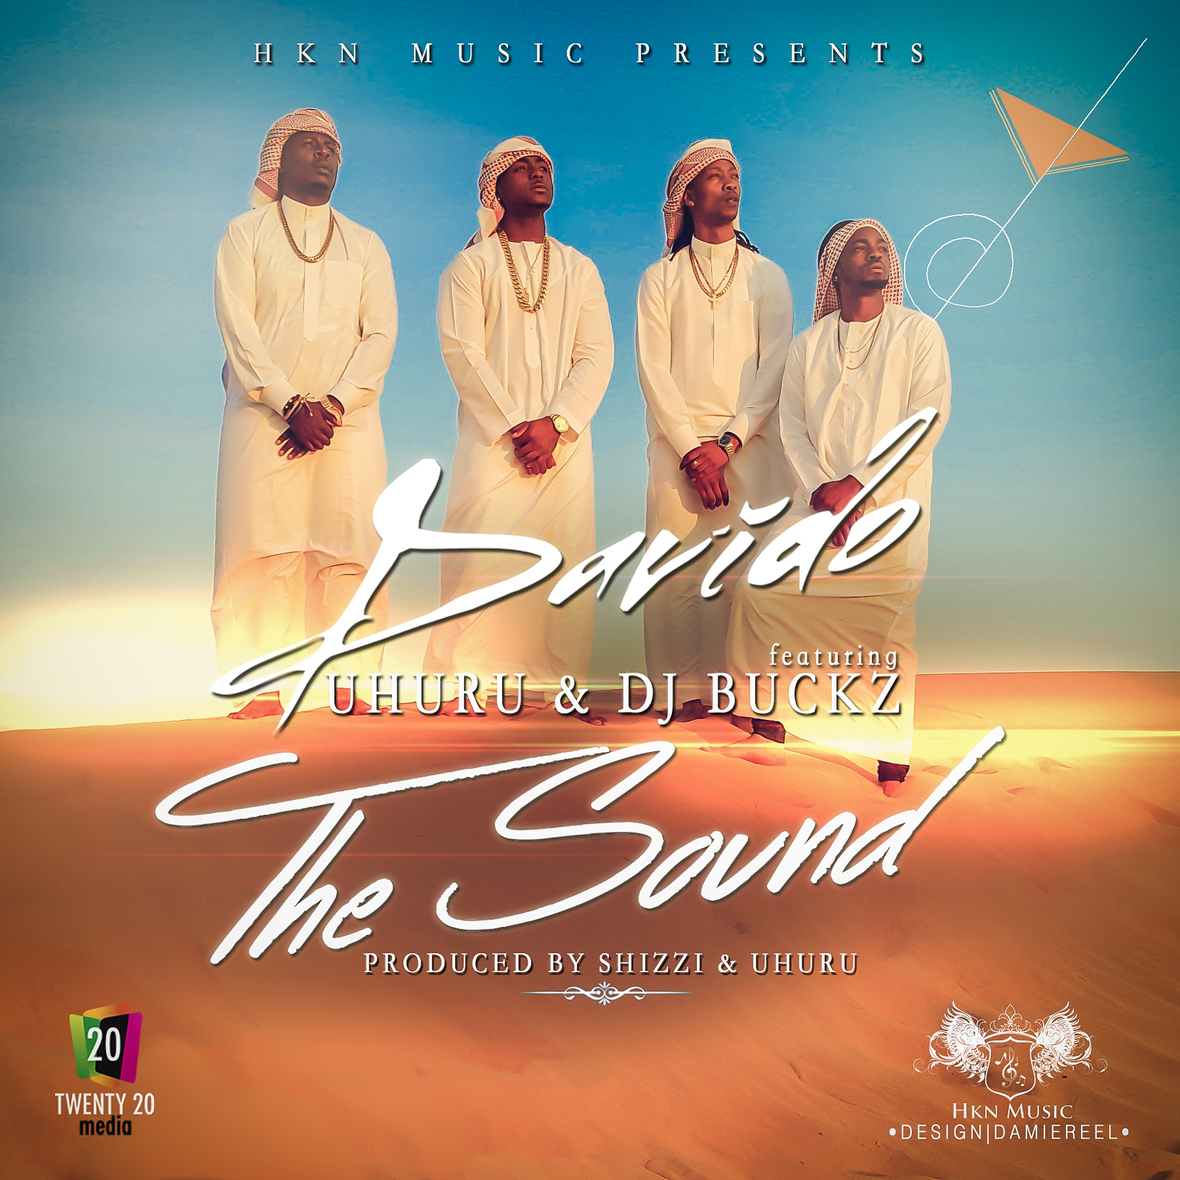 Davido The Sound